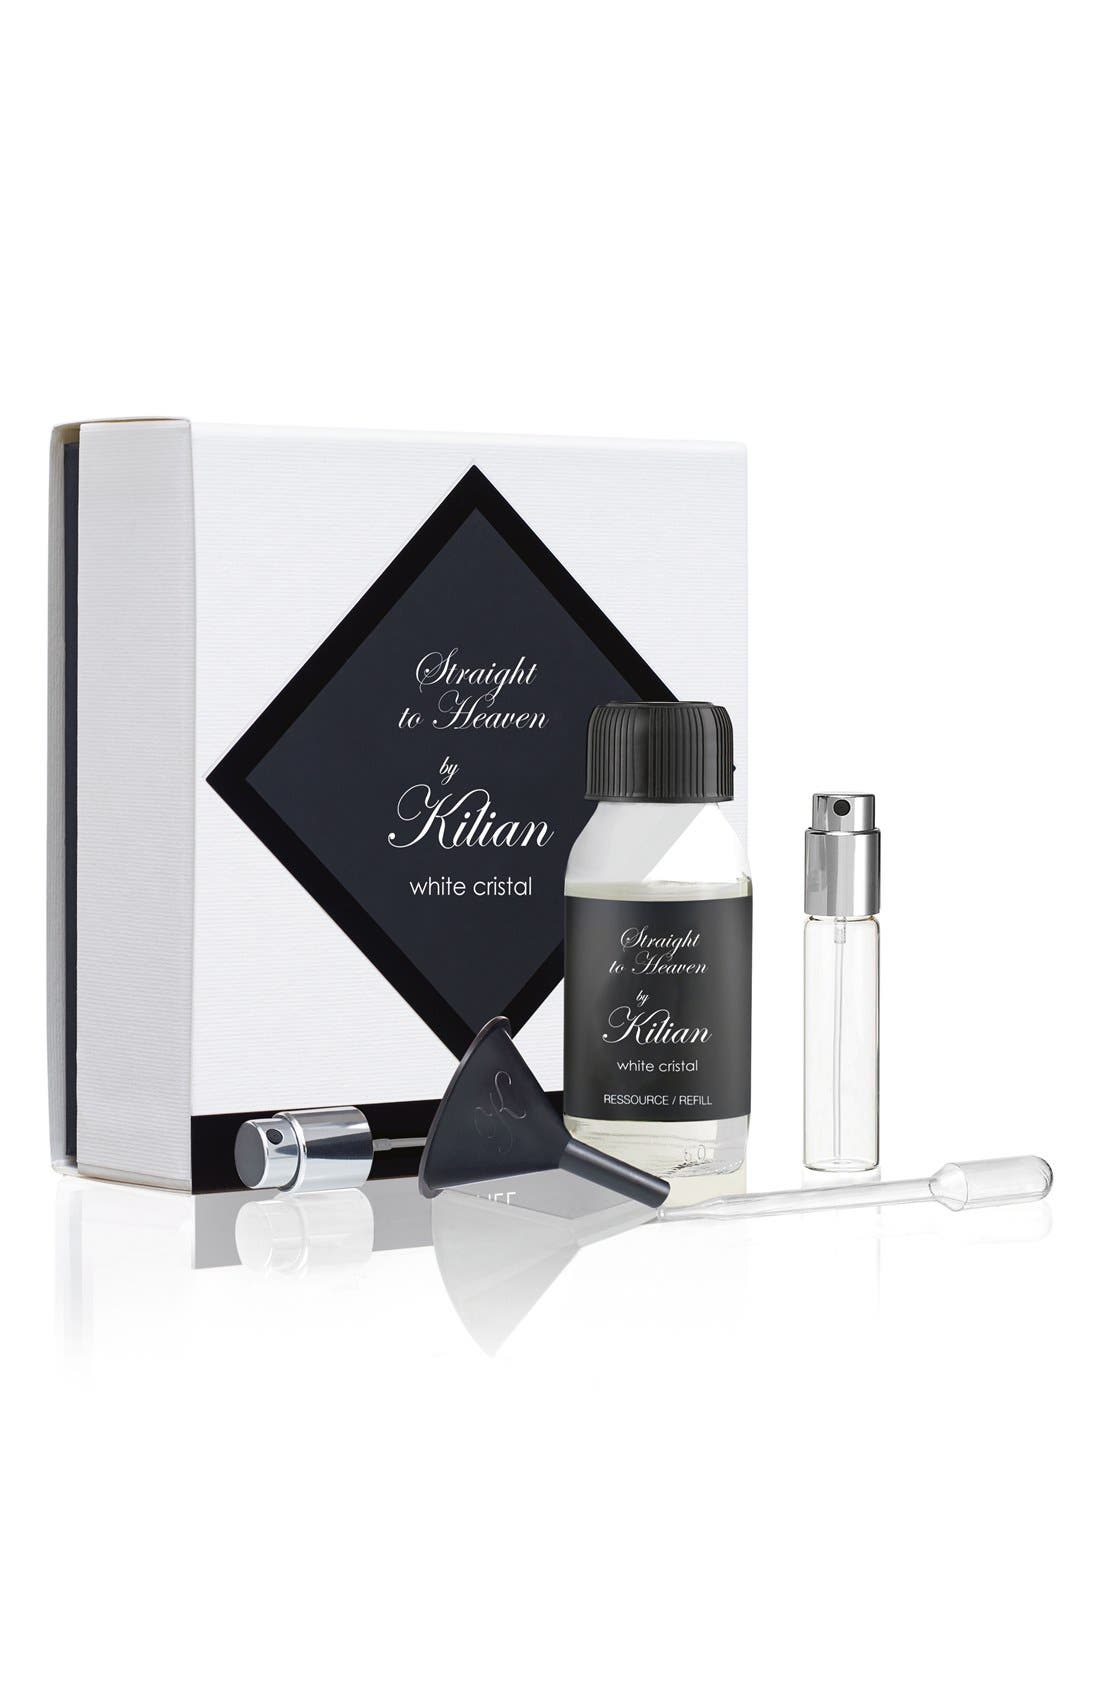 Kilian 'L'Oeuvre Noire - Straight to Heaven, white cristal' Fragrance Refill Set